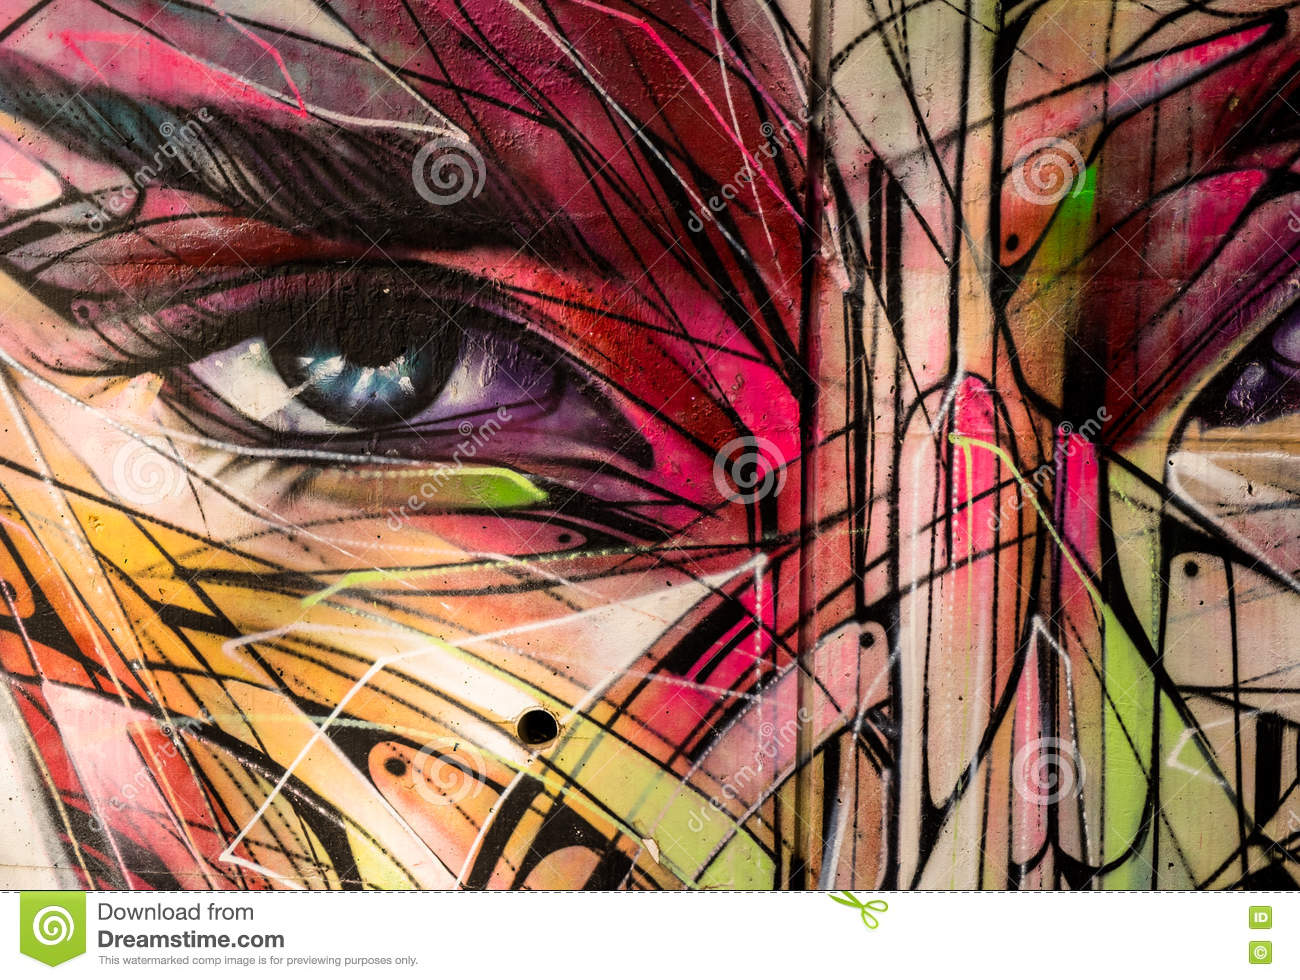 Graffiti face art showing eye and abstract face features hong kong